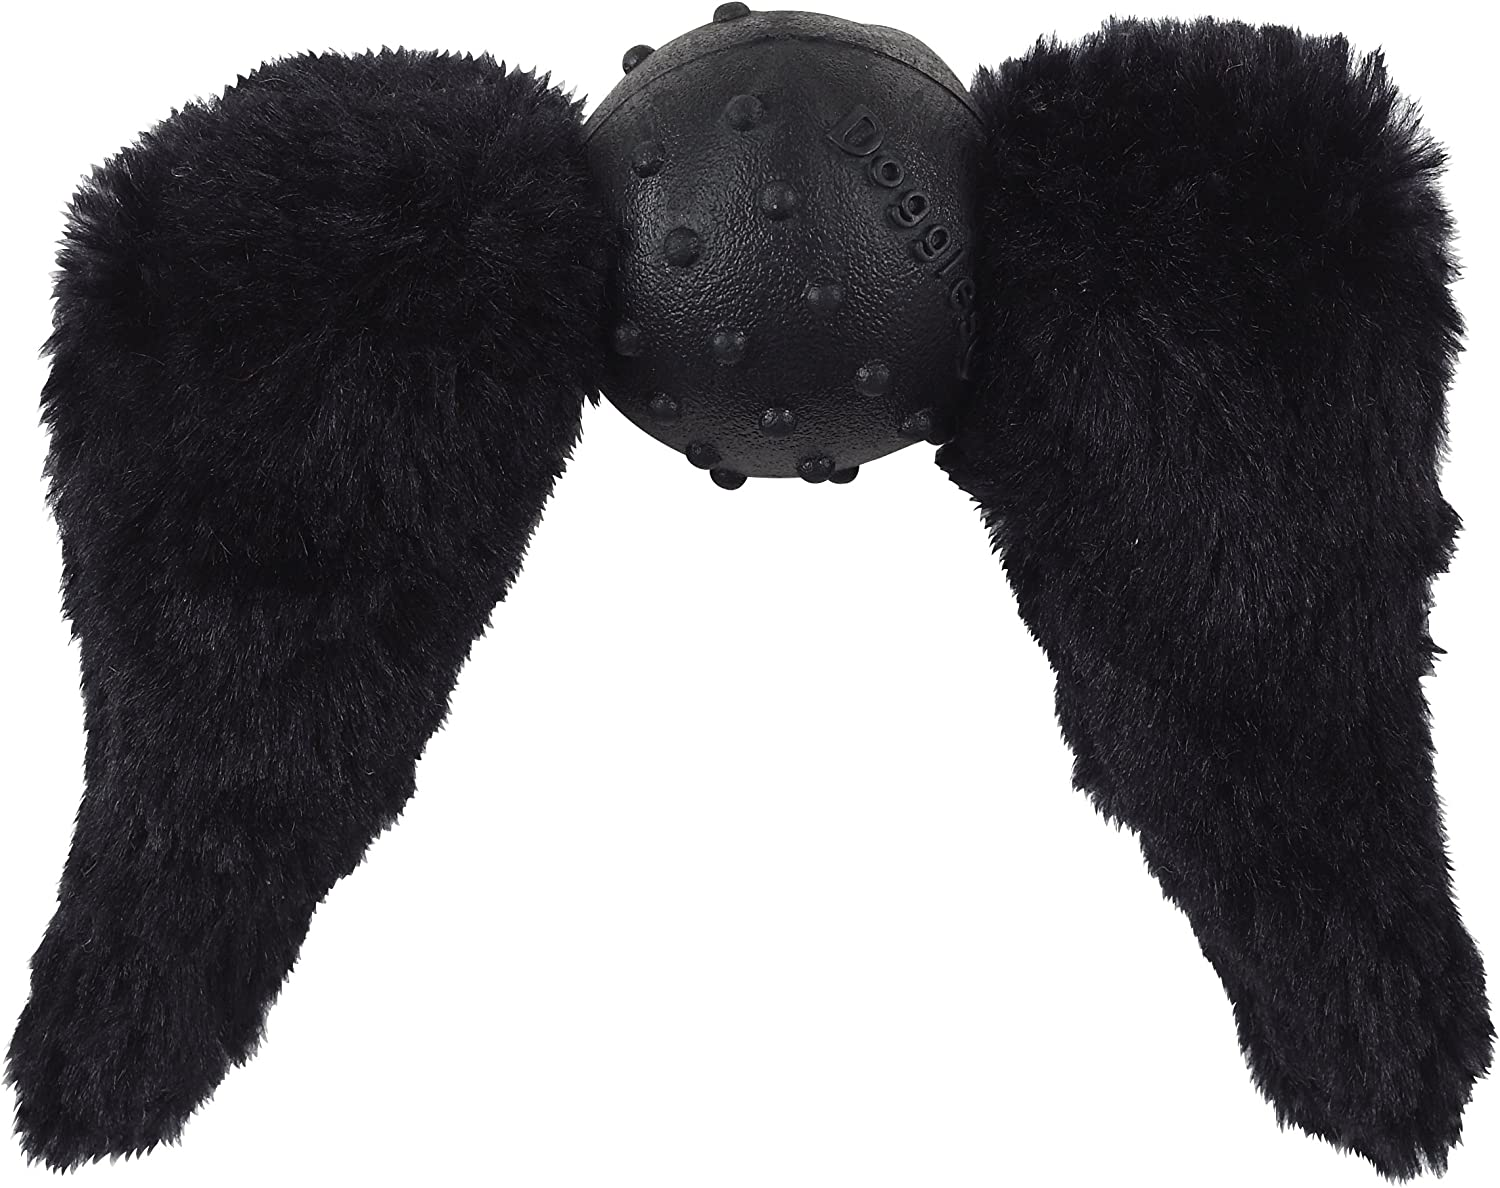 Doggles Mustache with Chops Toy for Dogs, Black